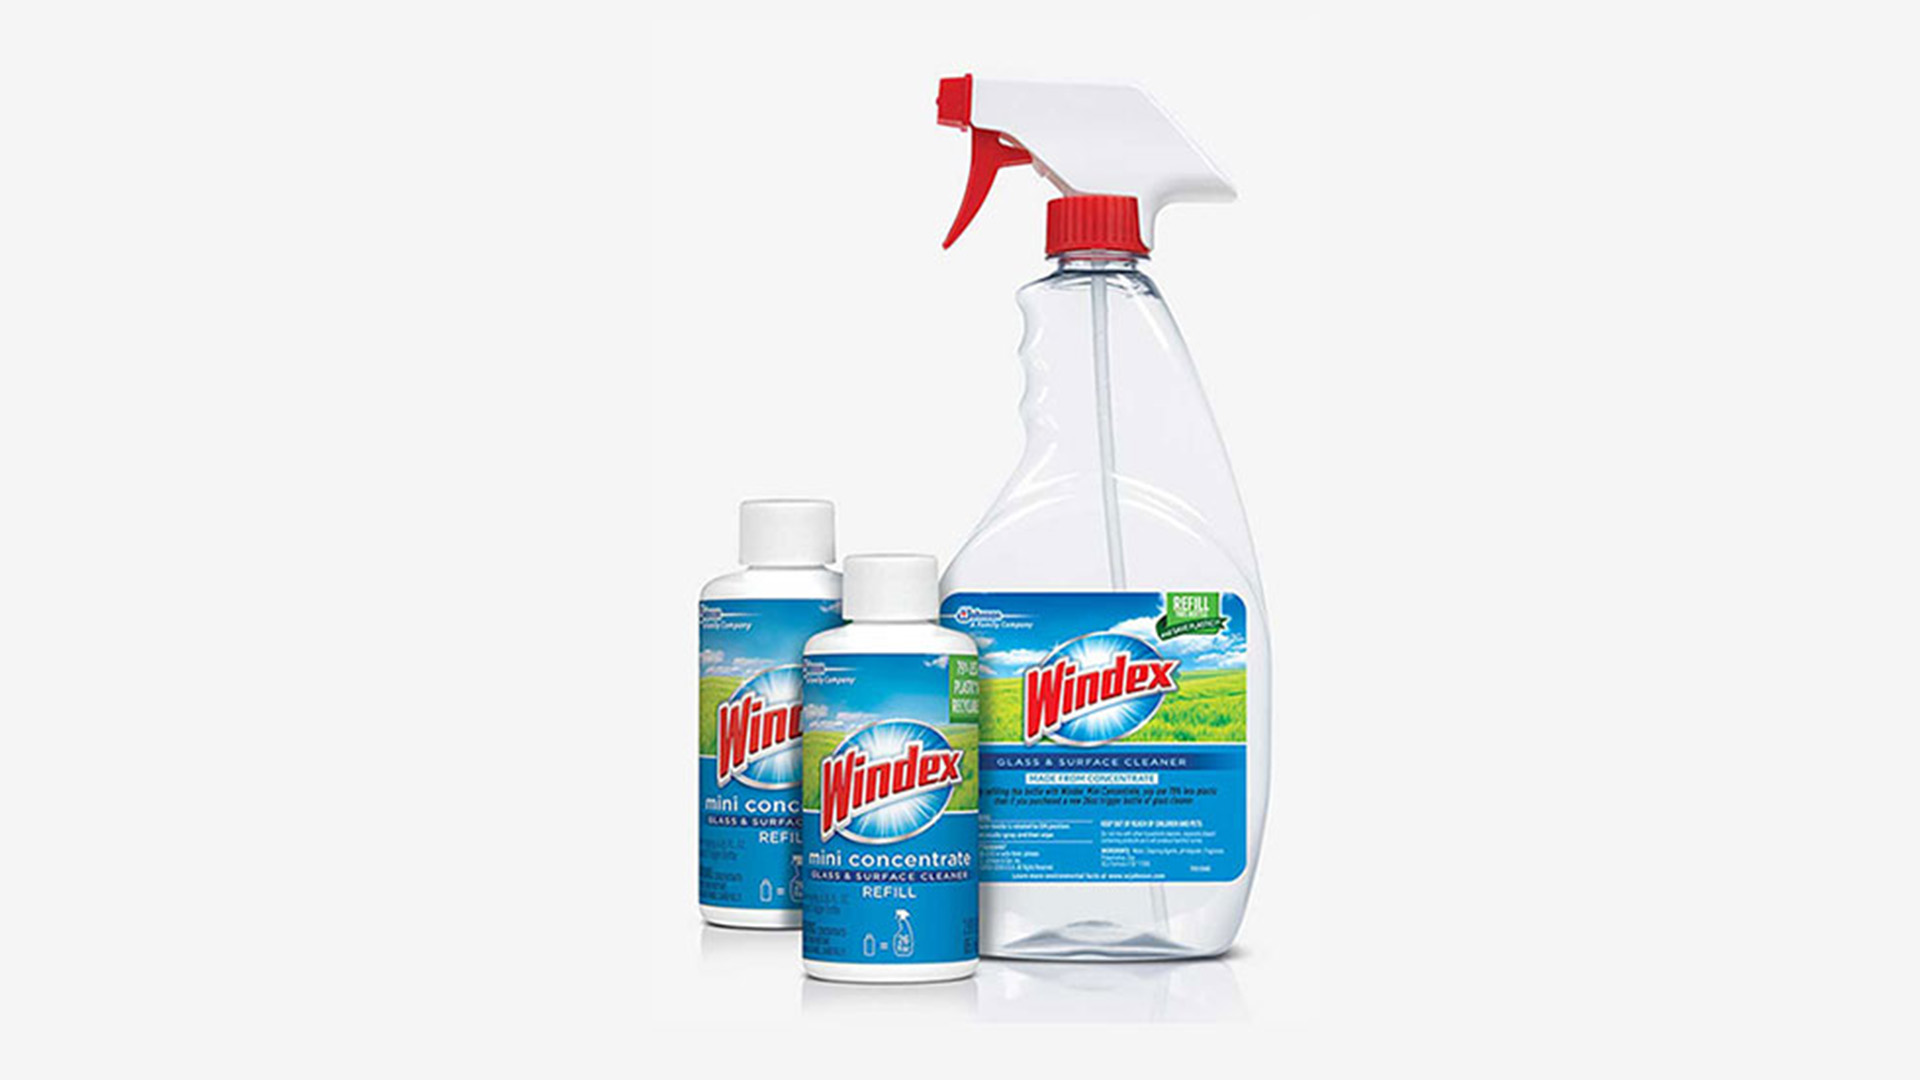 Concentrated refills enable reuse of home cleaning trigger spray bottles.